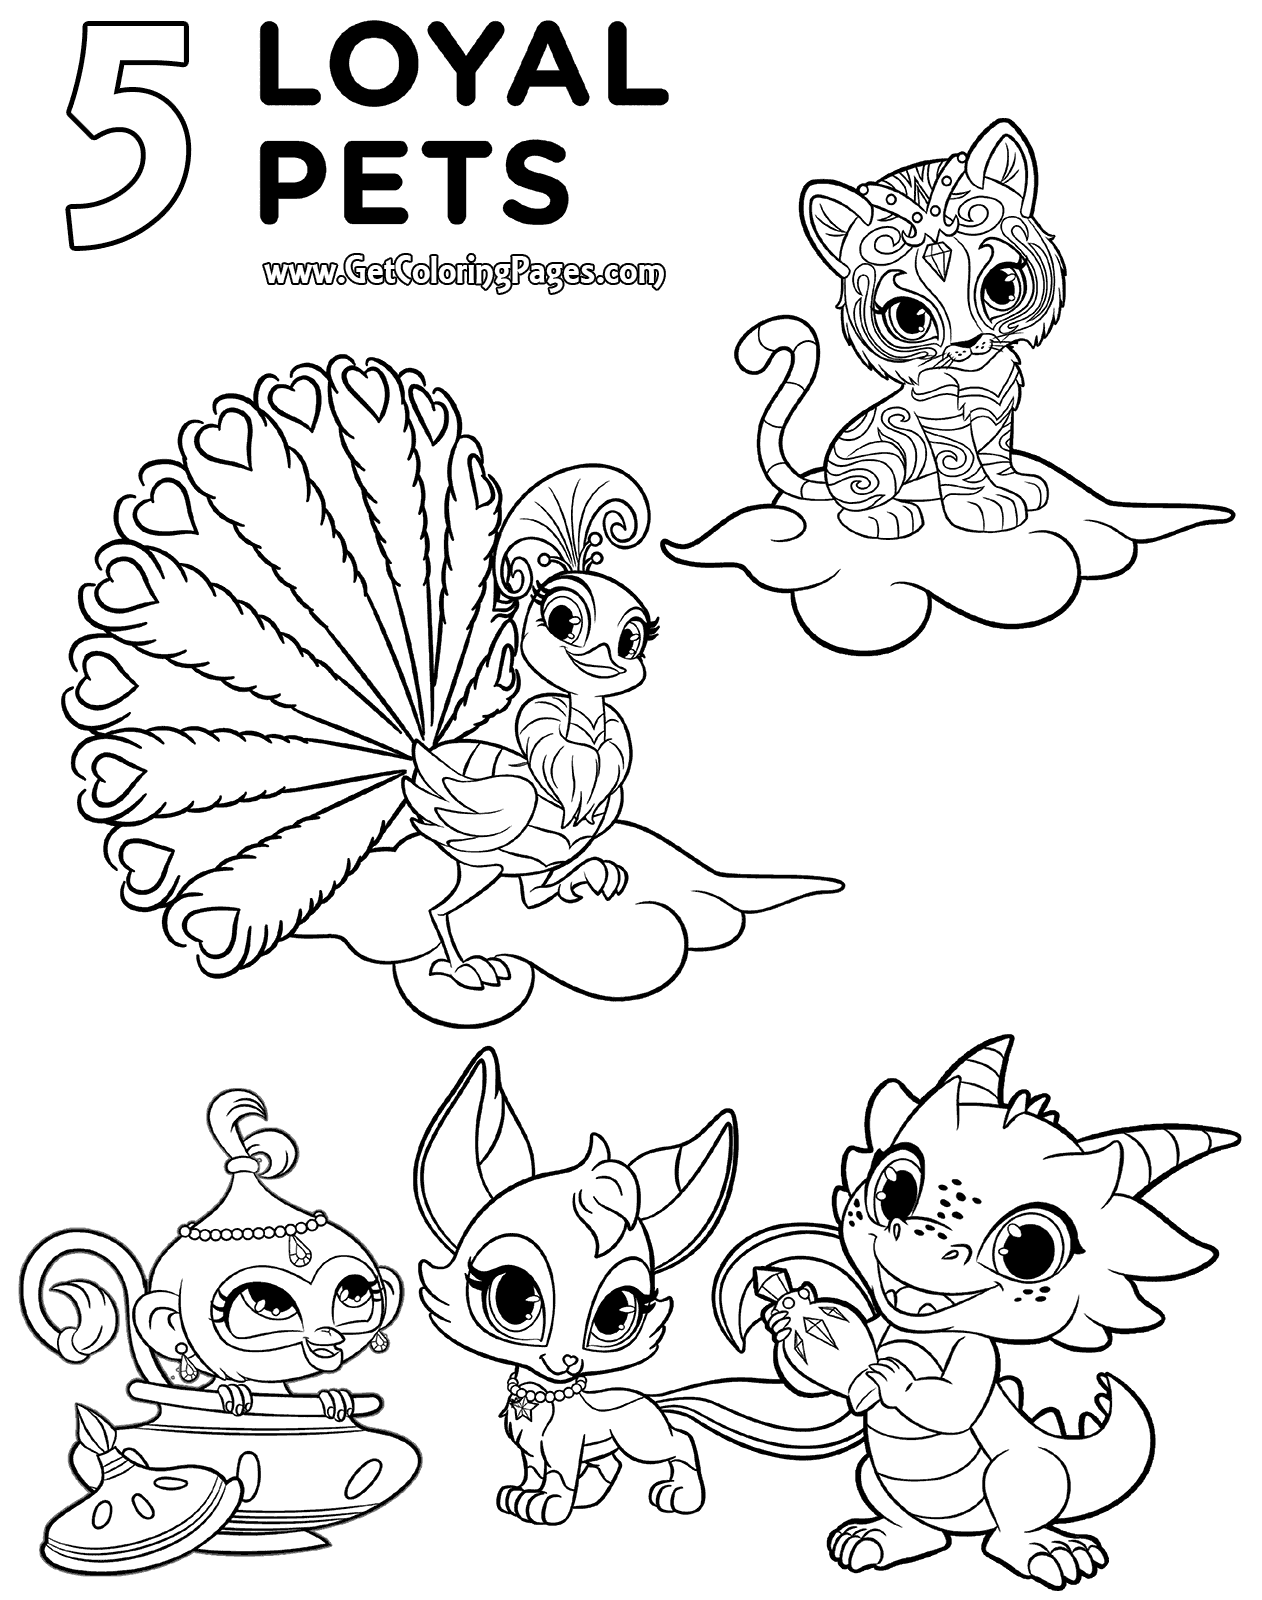 Coloring Pages Colouring Printable Books Sheets